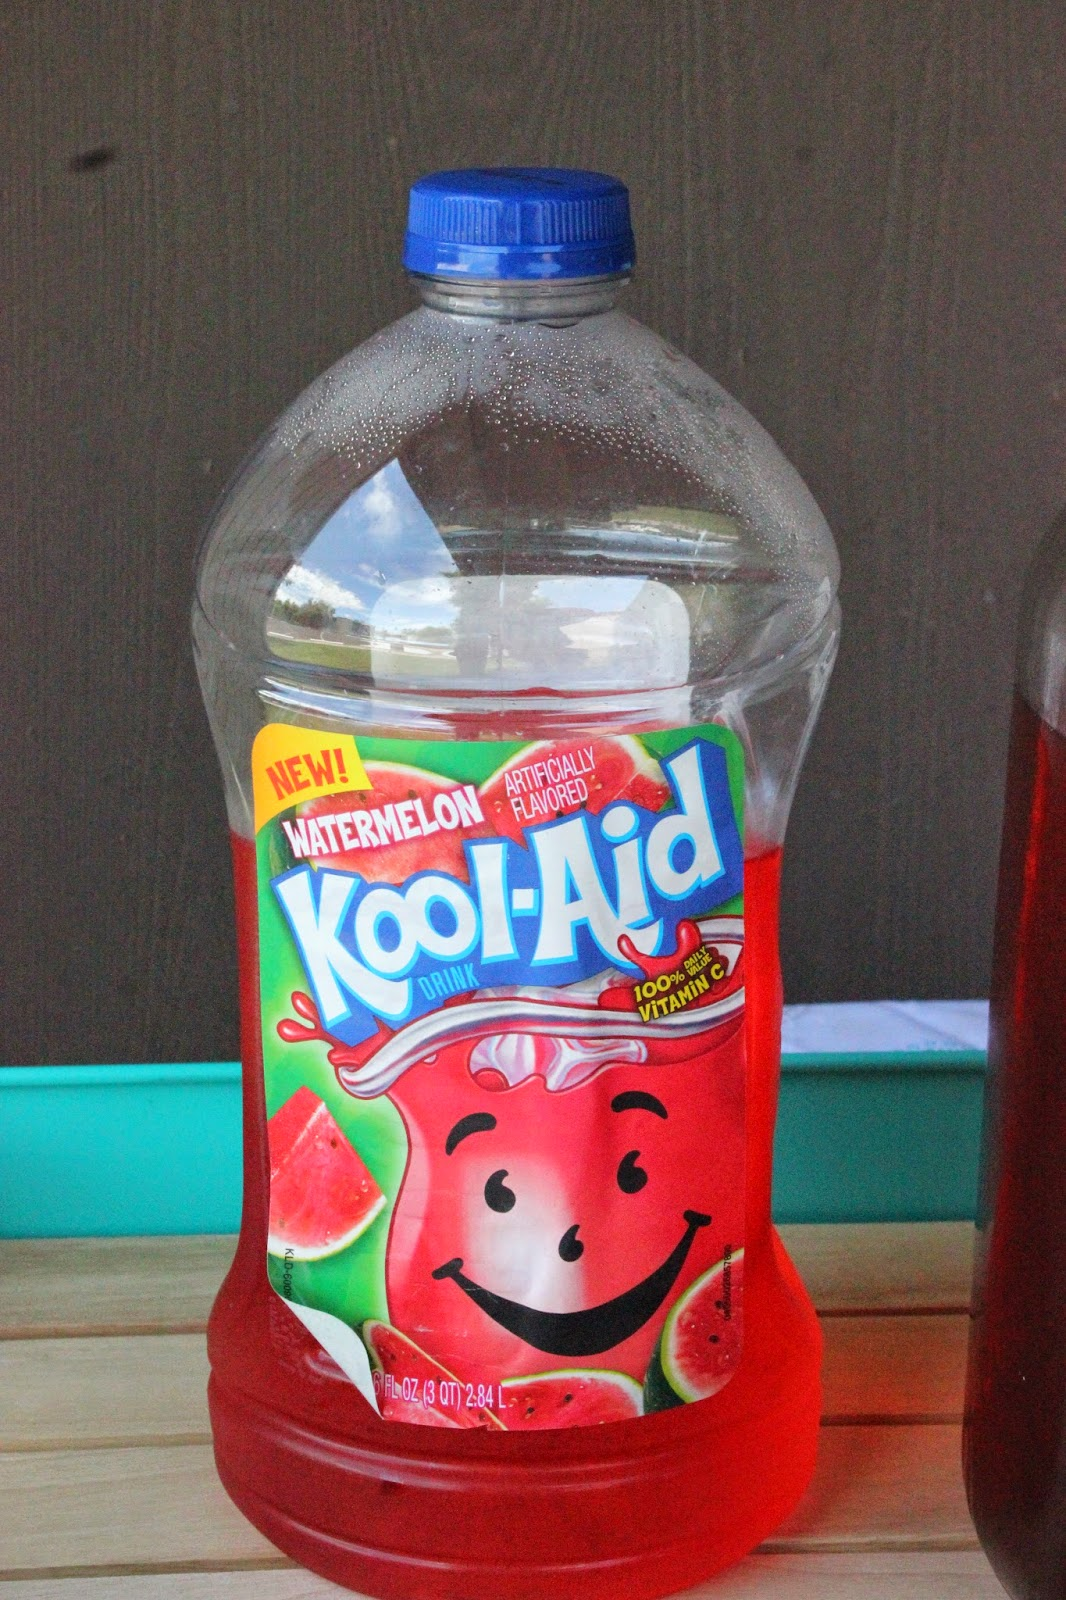 Watermelon Iced Tea Drink #KoolOff #Shop